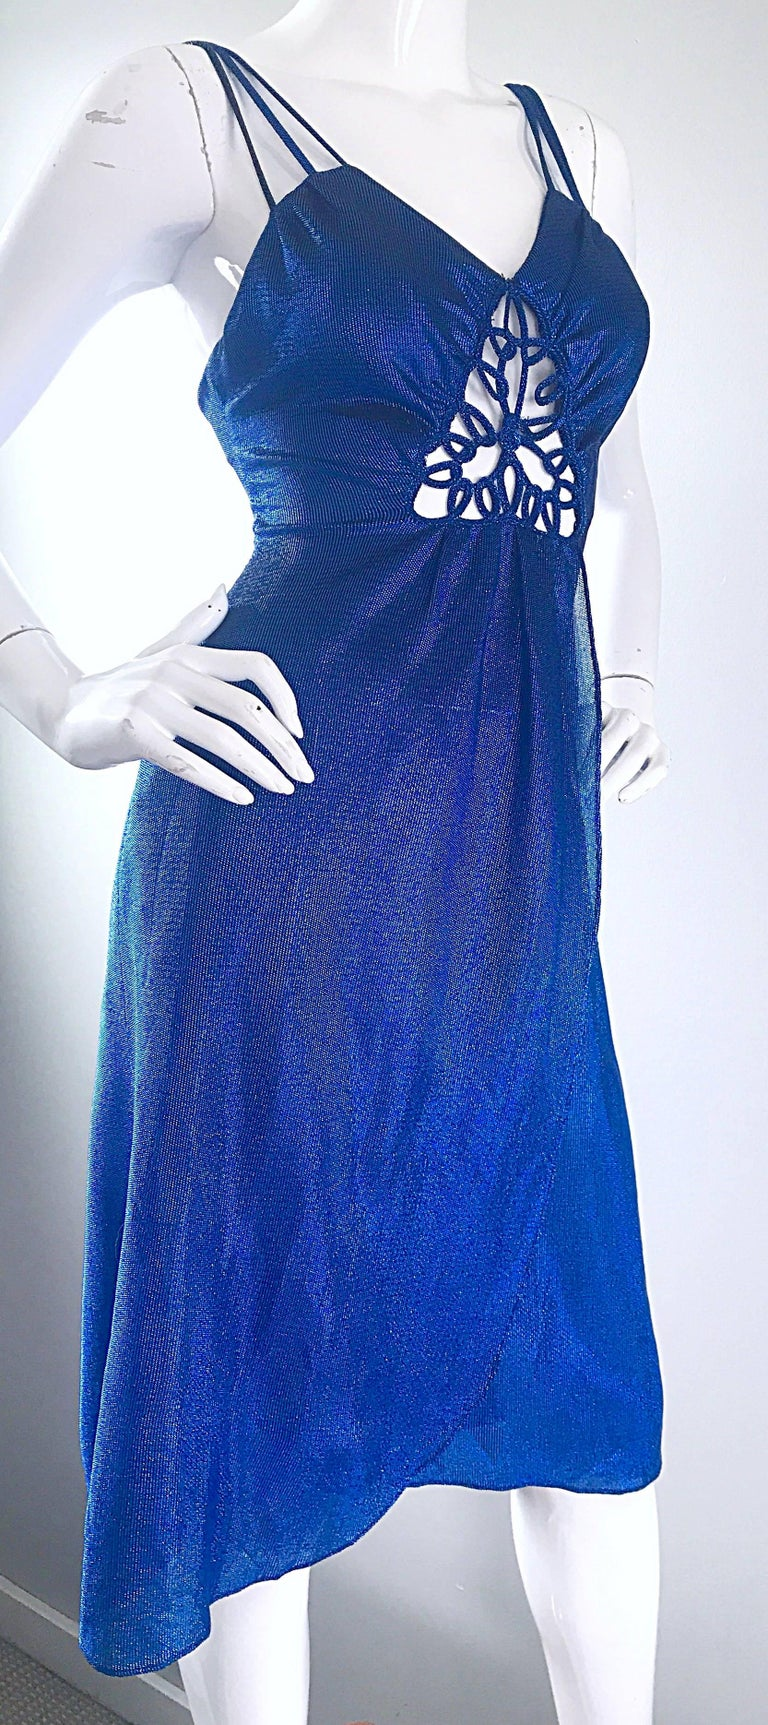 1970s Samir Sexy Electric Blue Metallic Cut - Out Slinky Vintage 70s Disco Dress For Sale 1